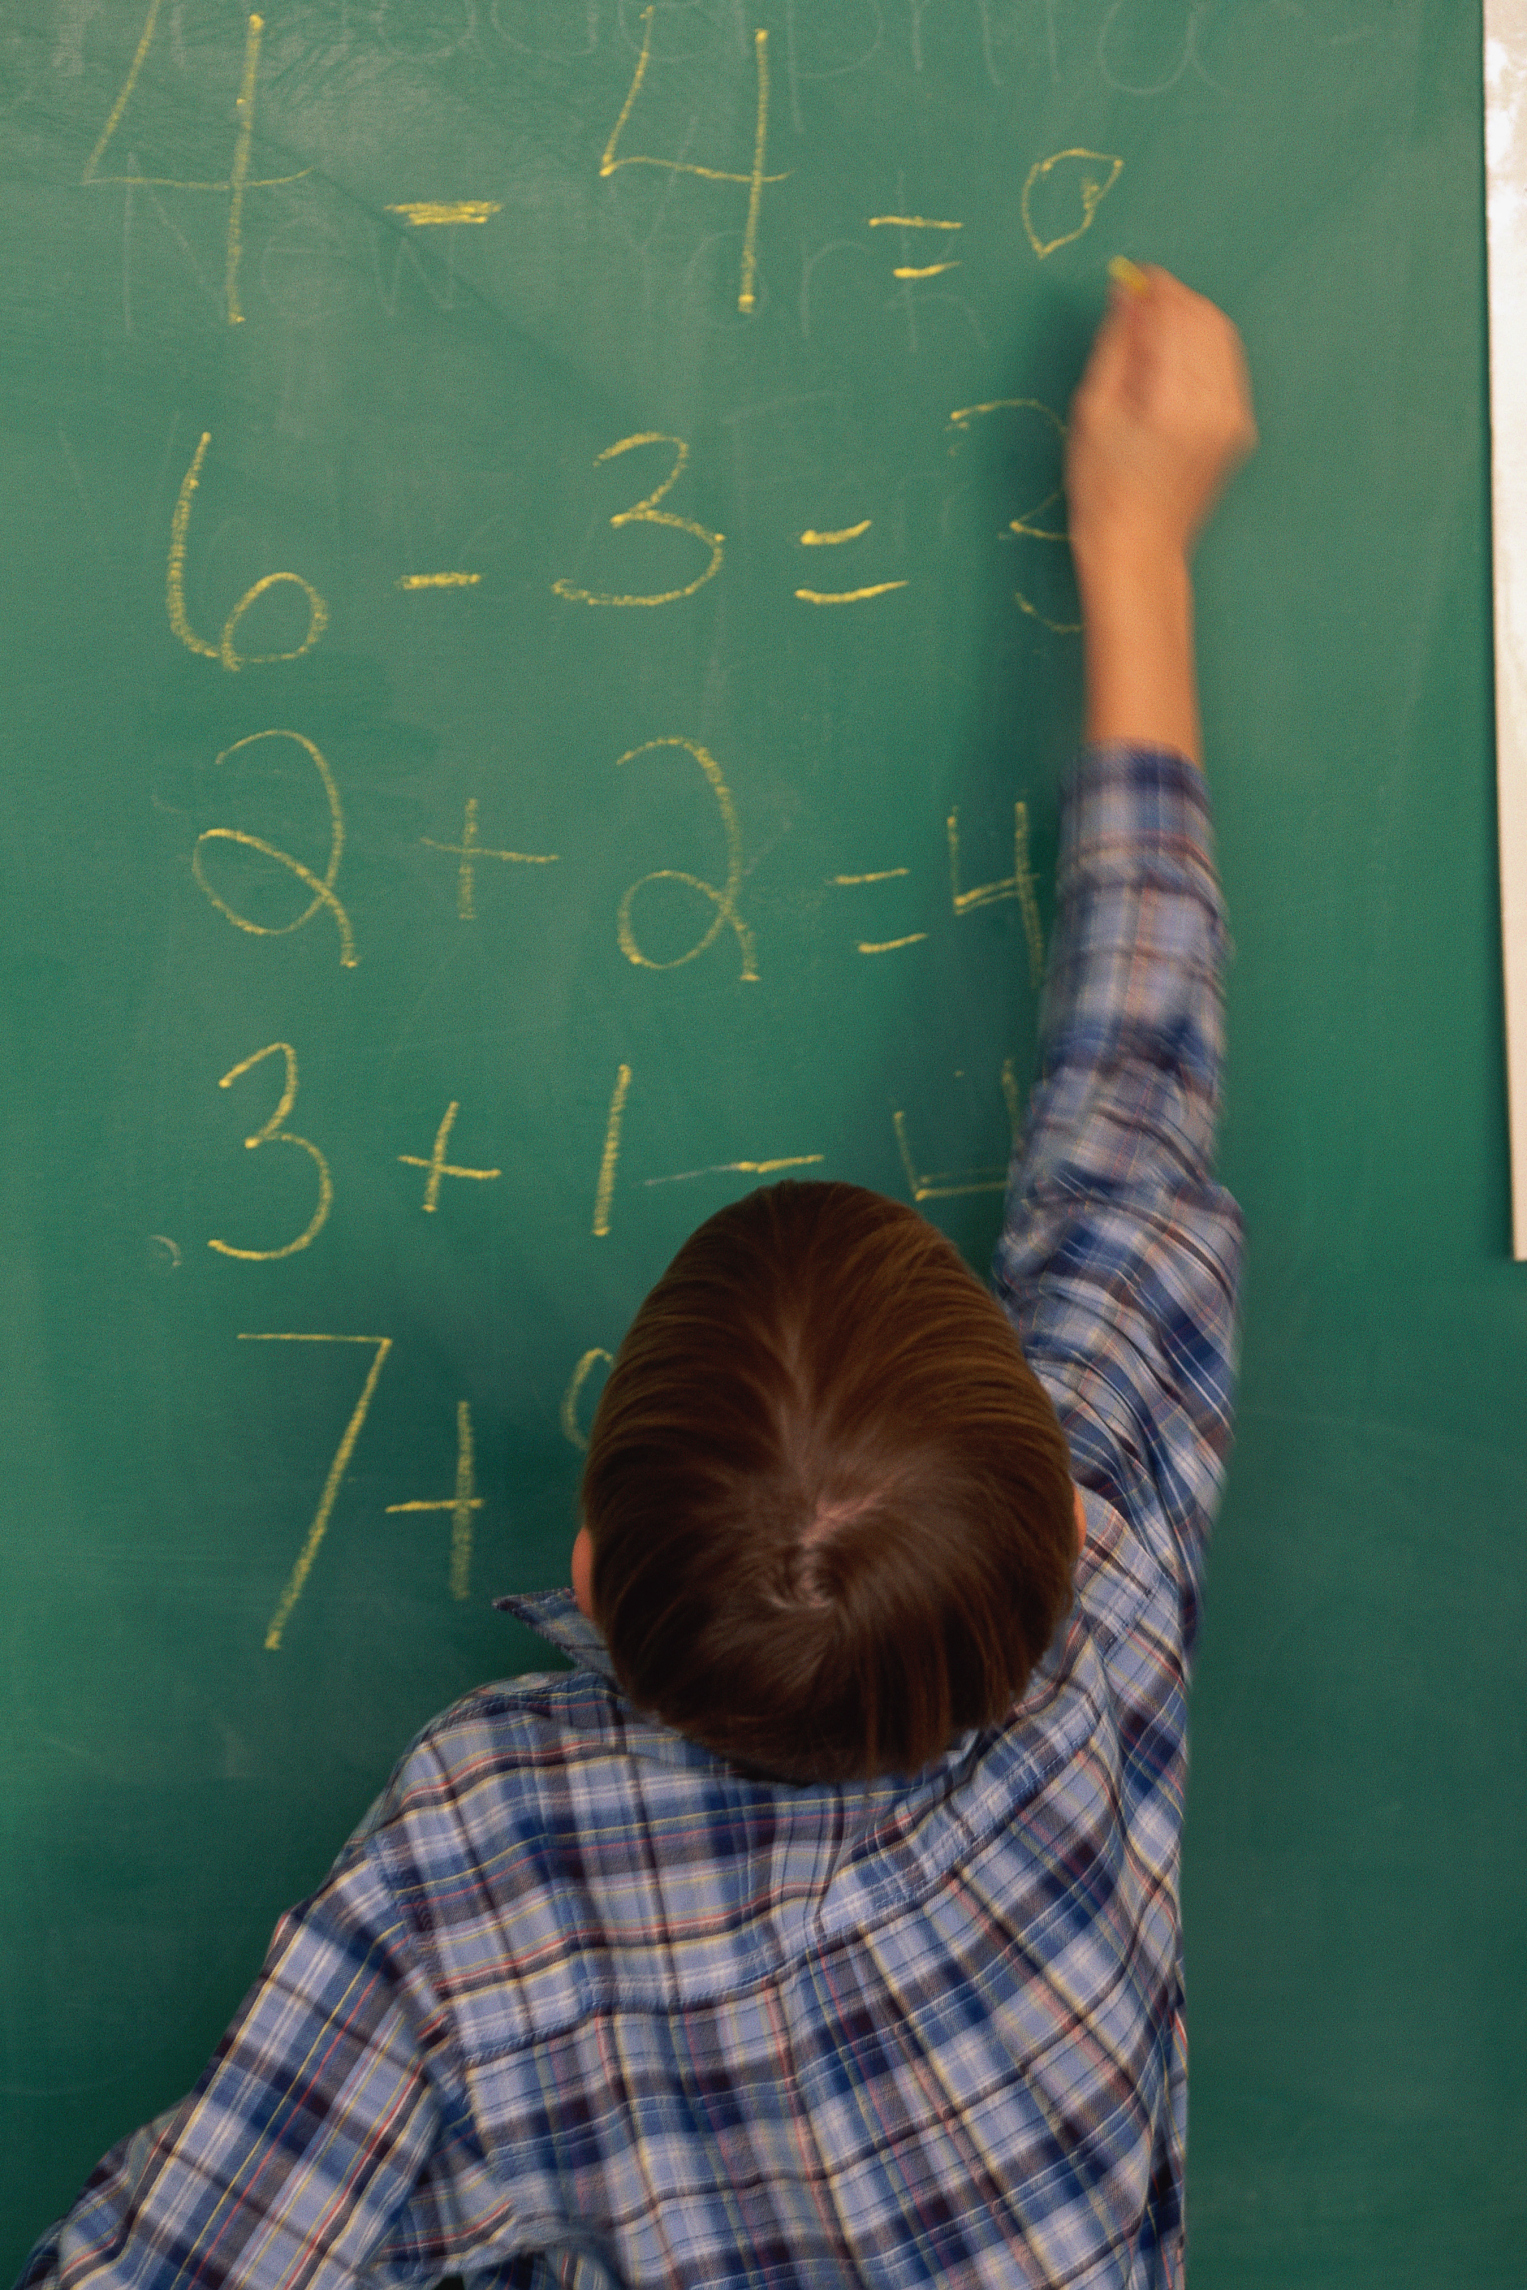 Common Problems of Students in Mathematics | Our Everyday Life